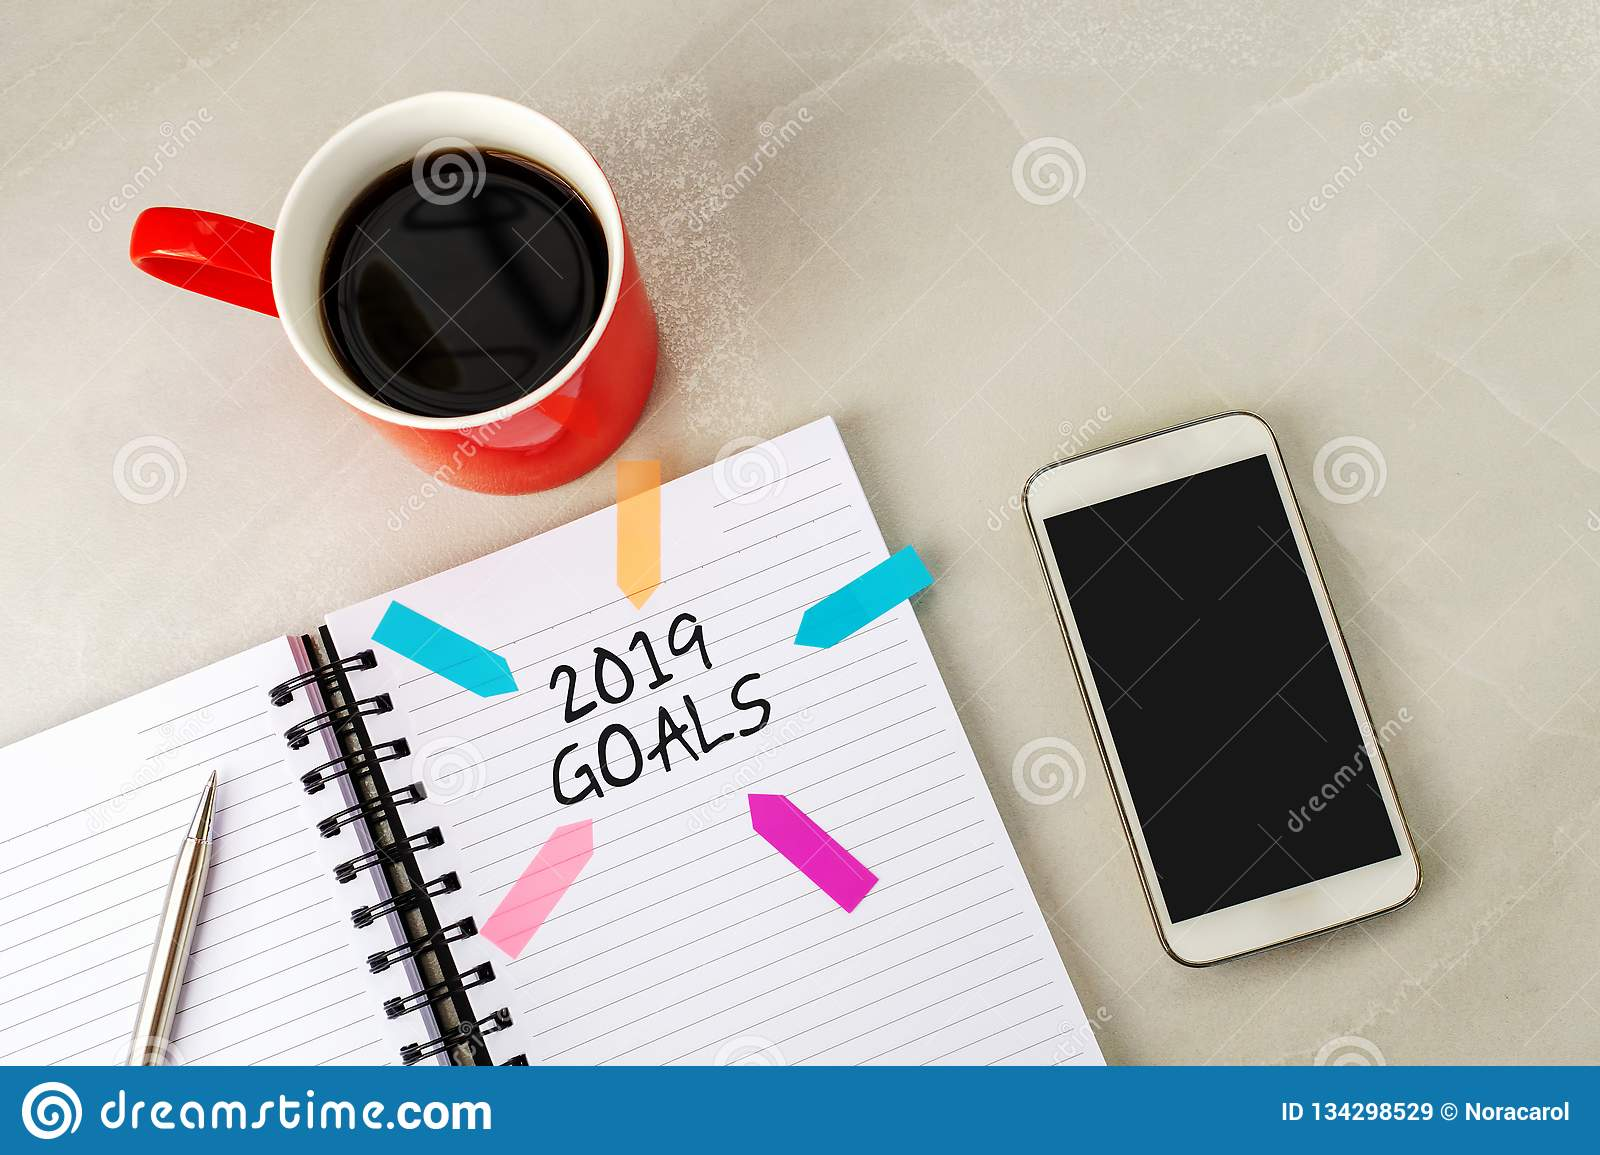 2019 goals text on note pad